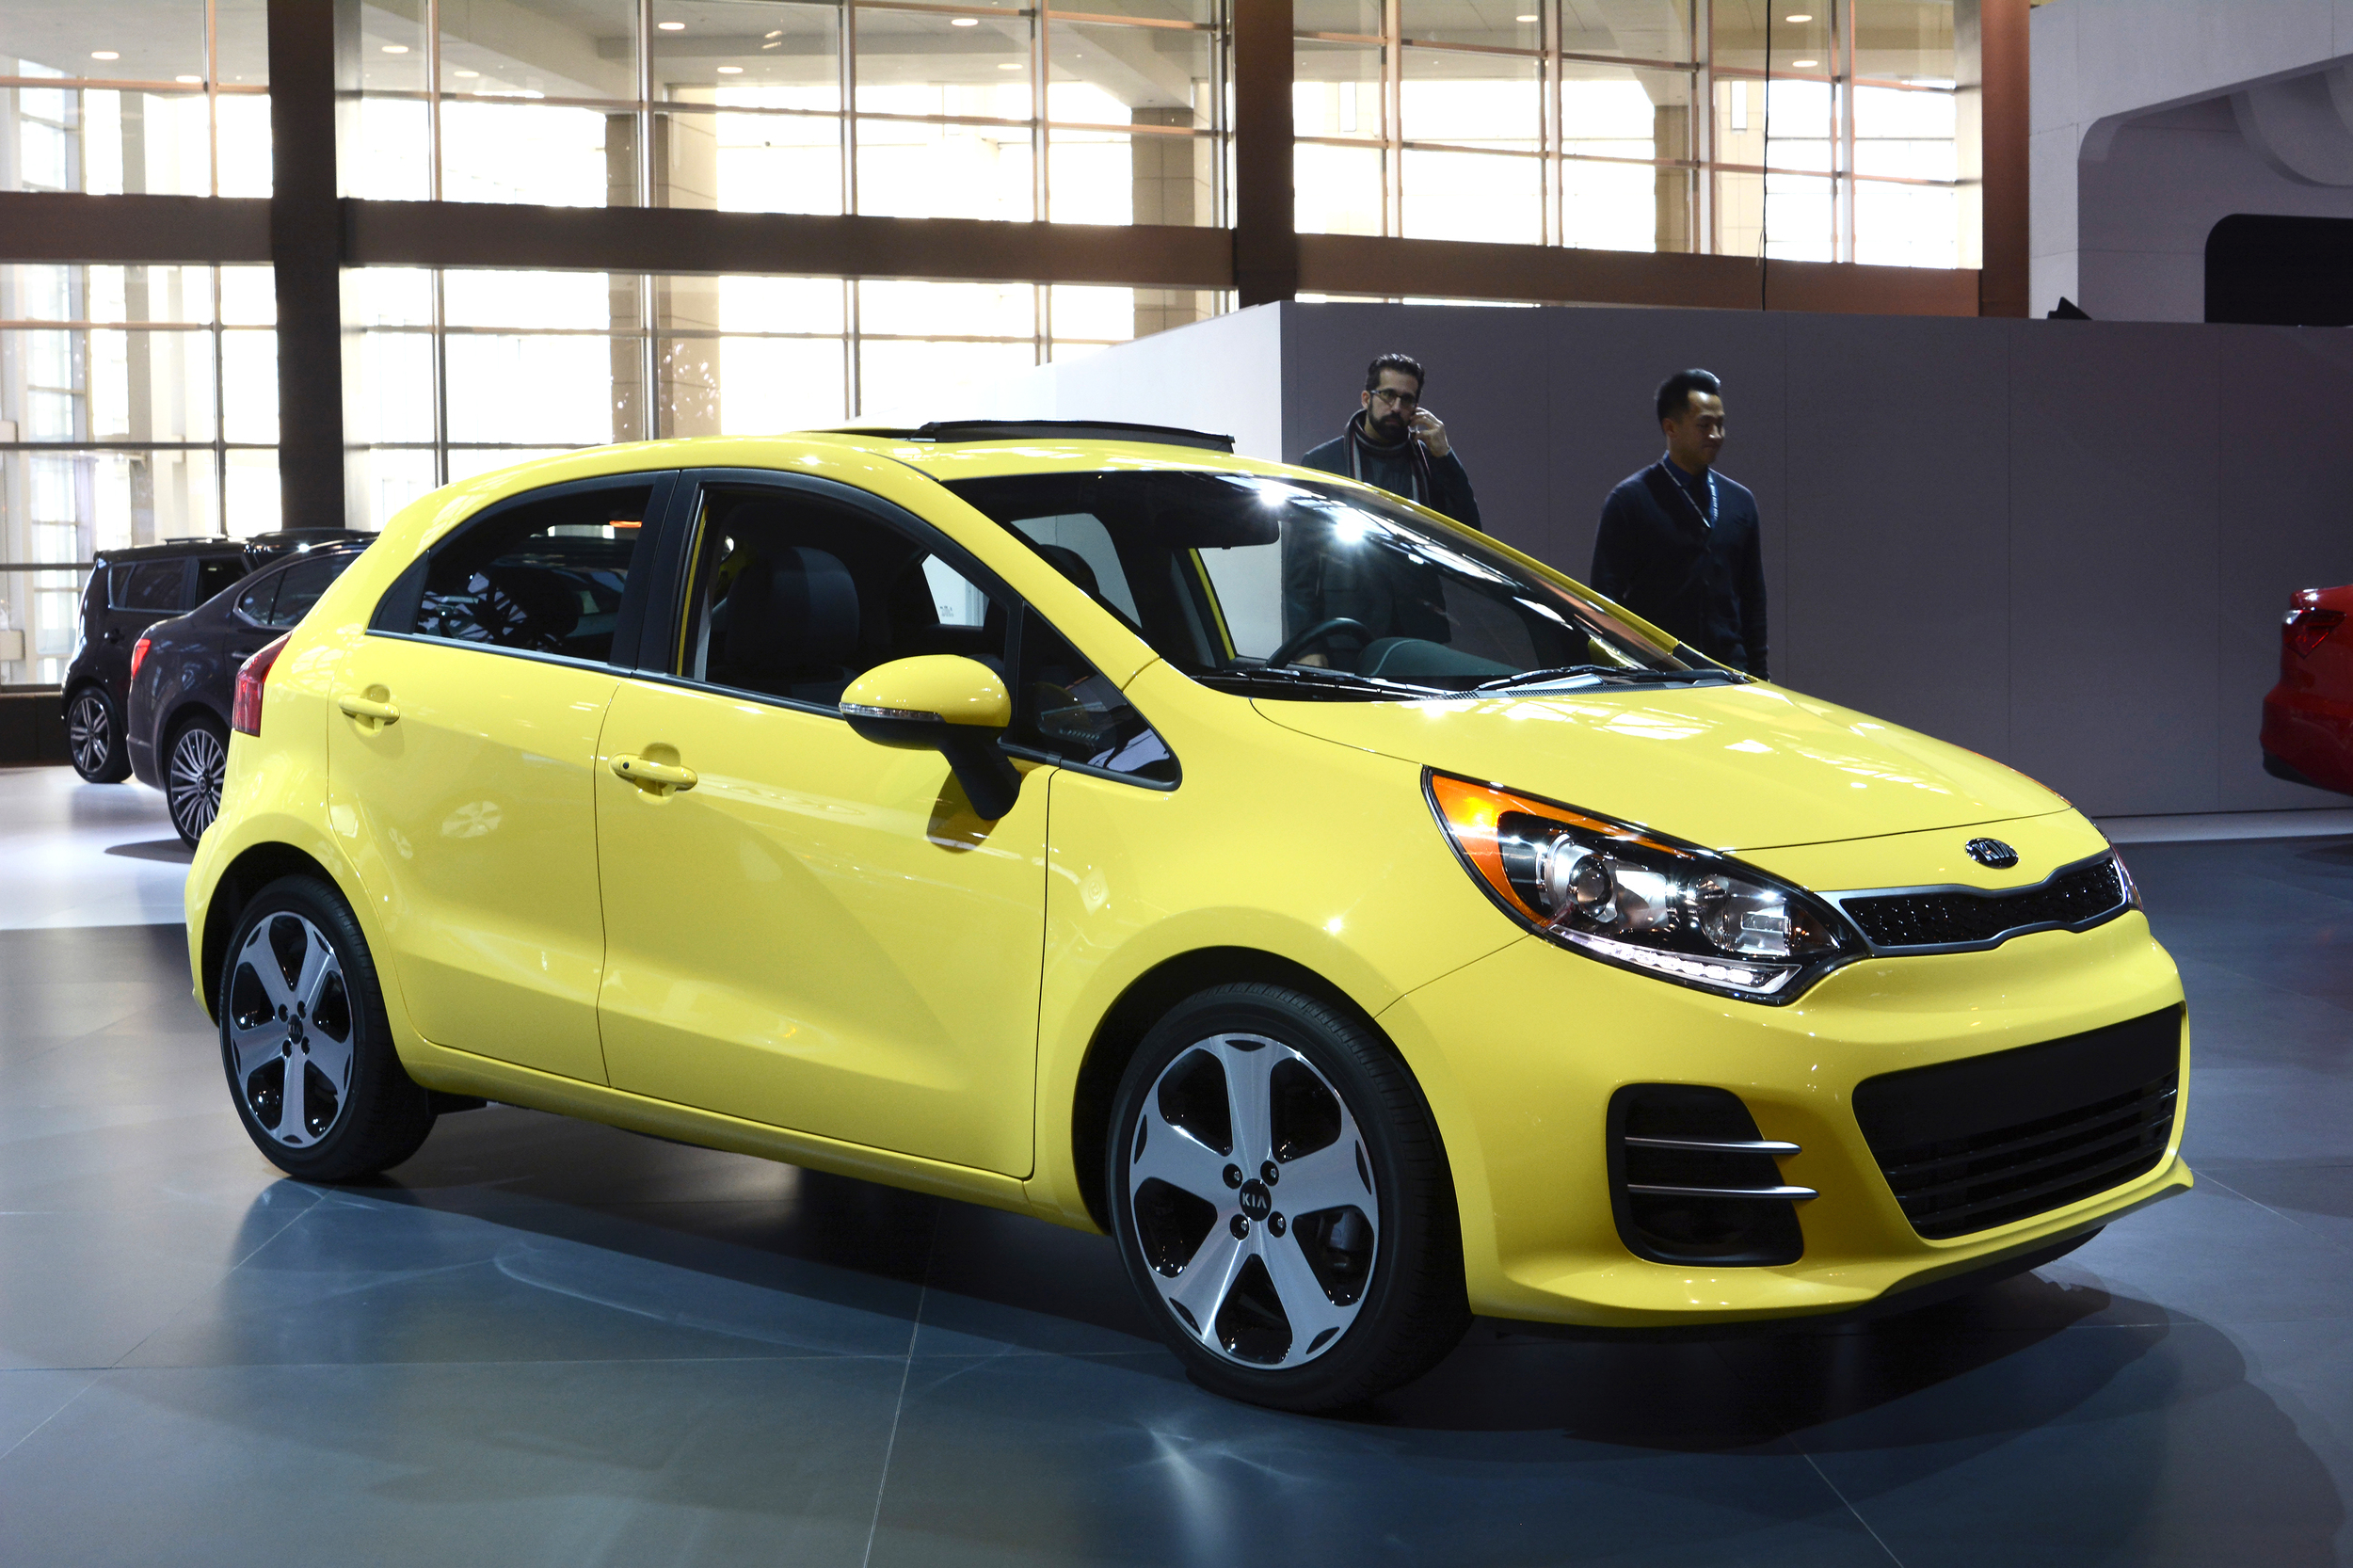 2016 kia rio chicago 2015 photo gallery autoblog. Black Bedroom Furniture Sets. Home Design Ideas